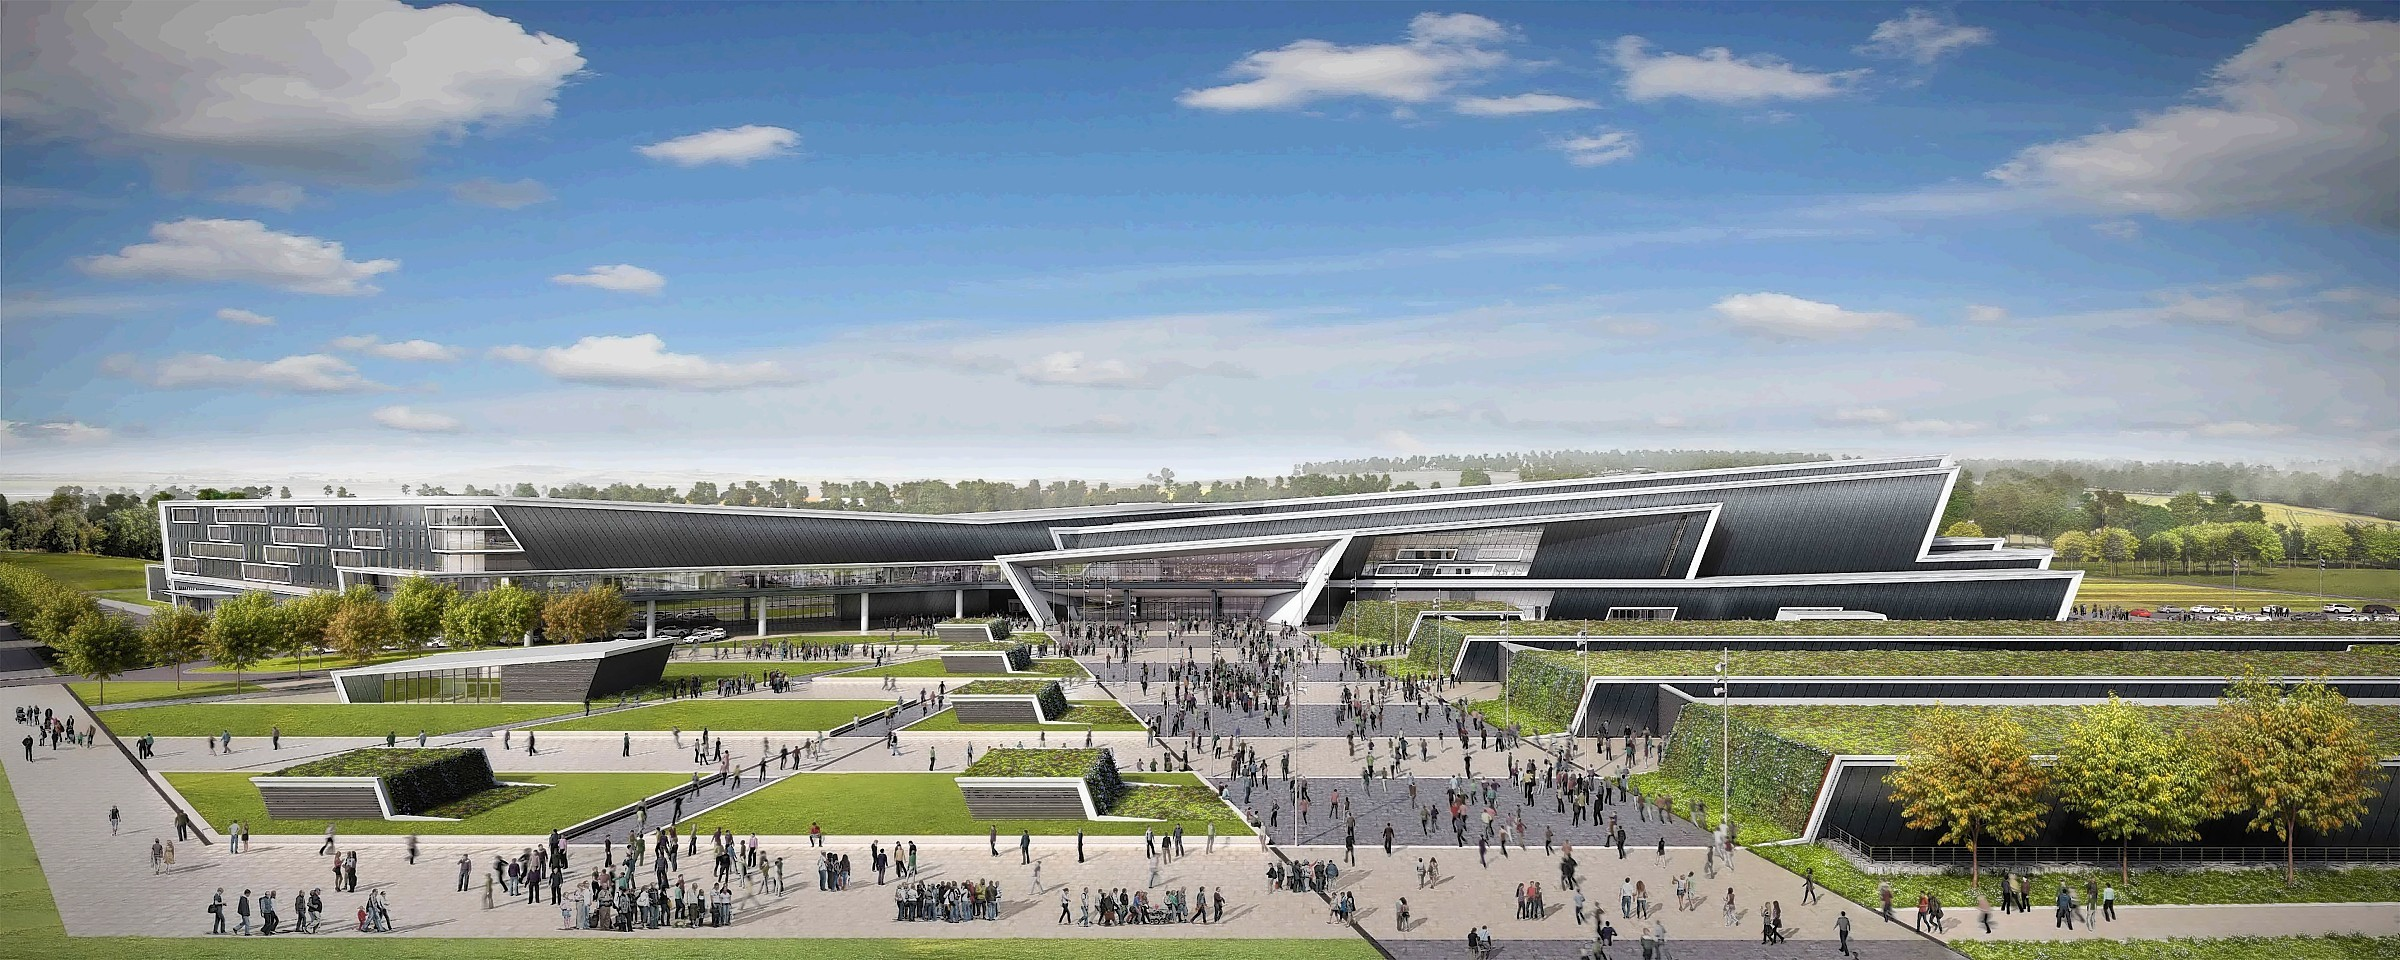 Artist impression of the planned new AECC for Bucksburn.